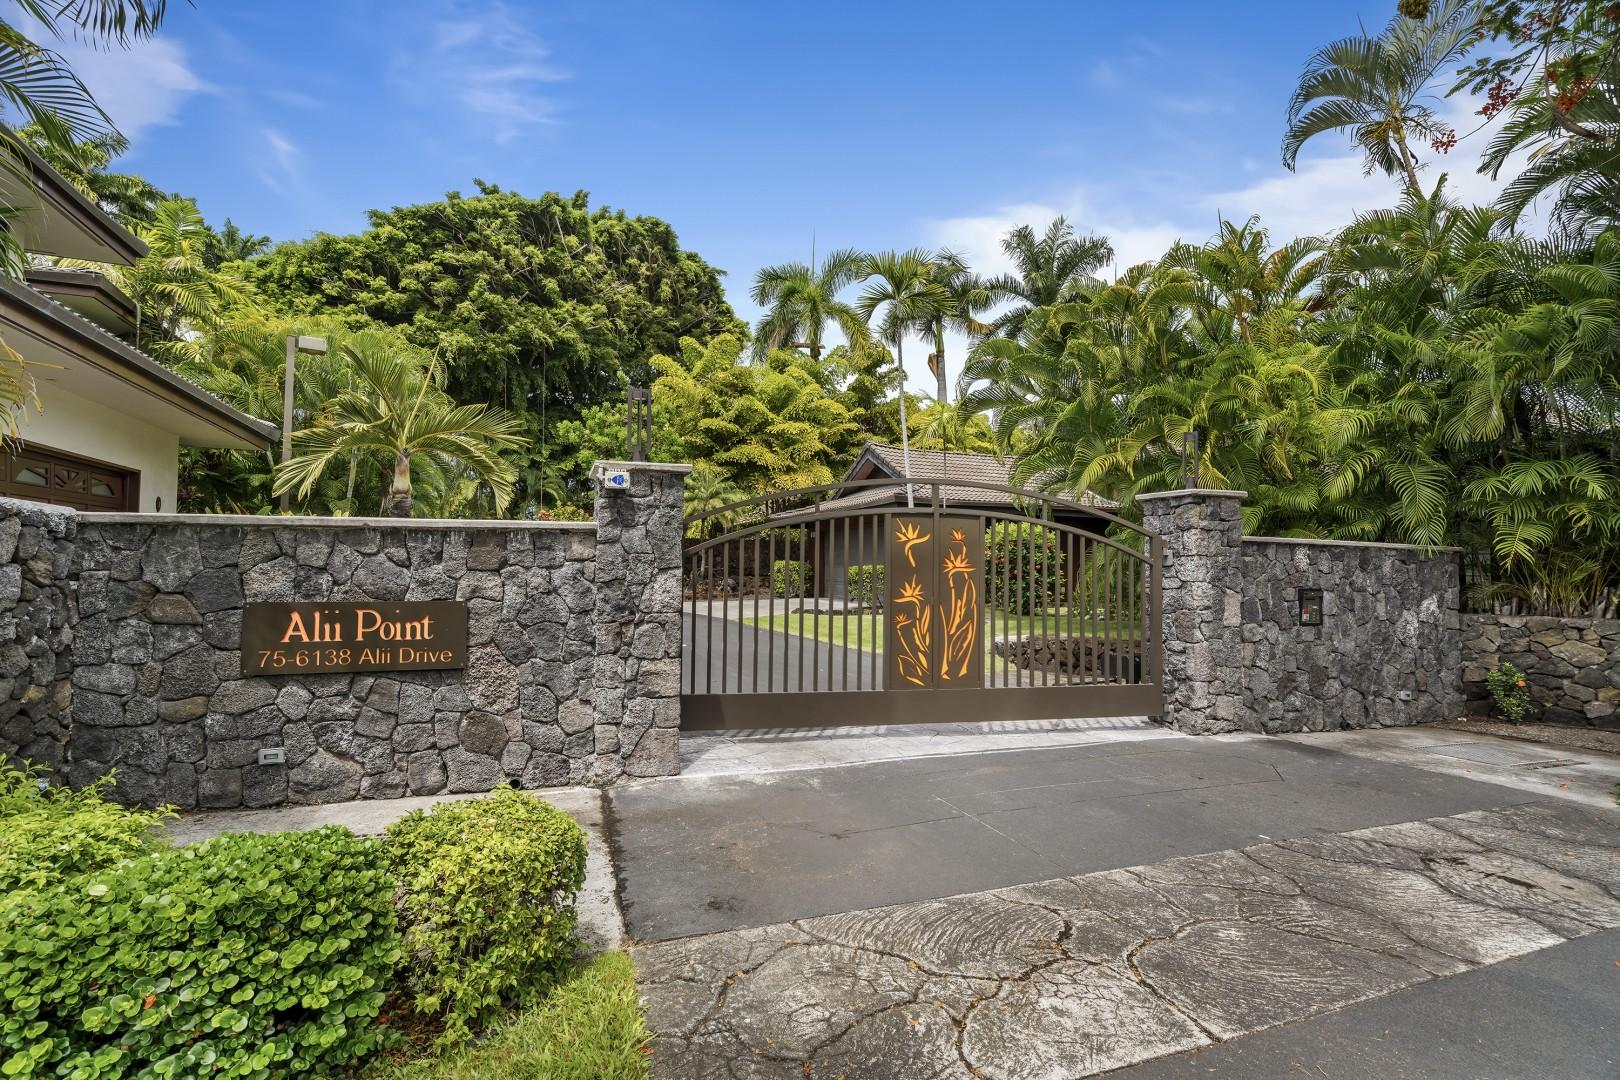 Gated entry of the Alii Point Complex